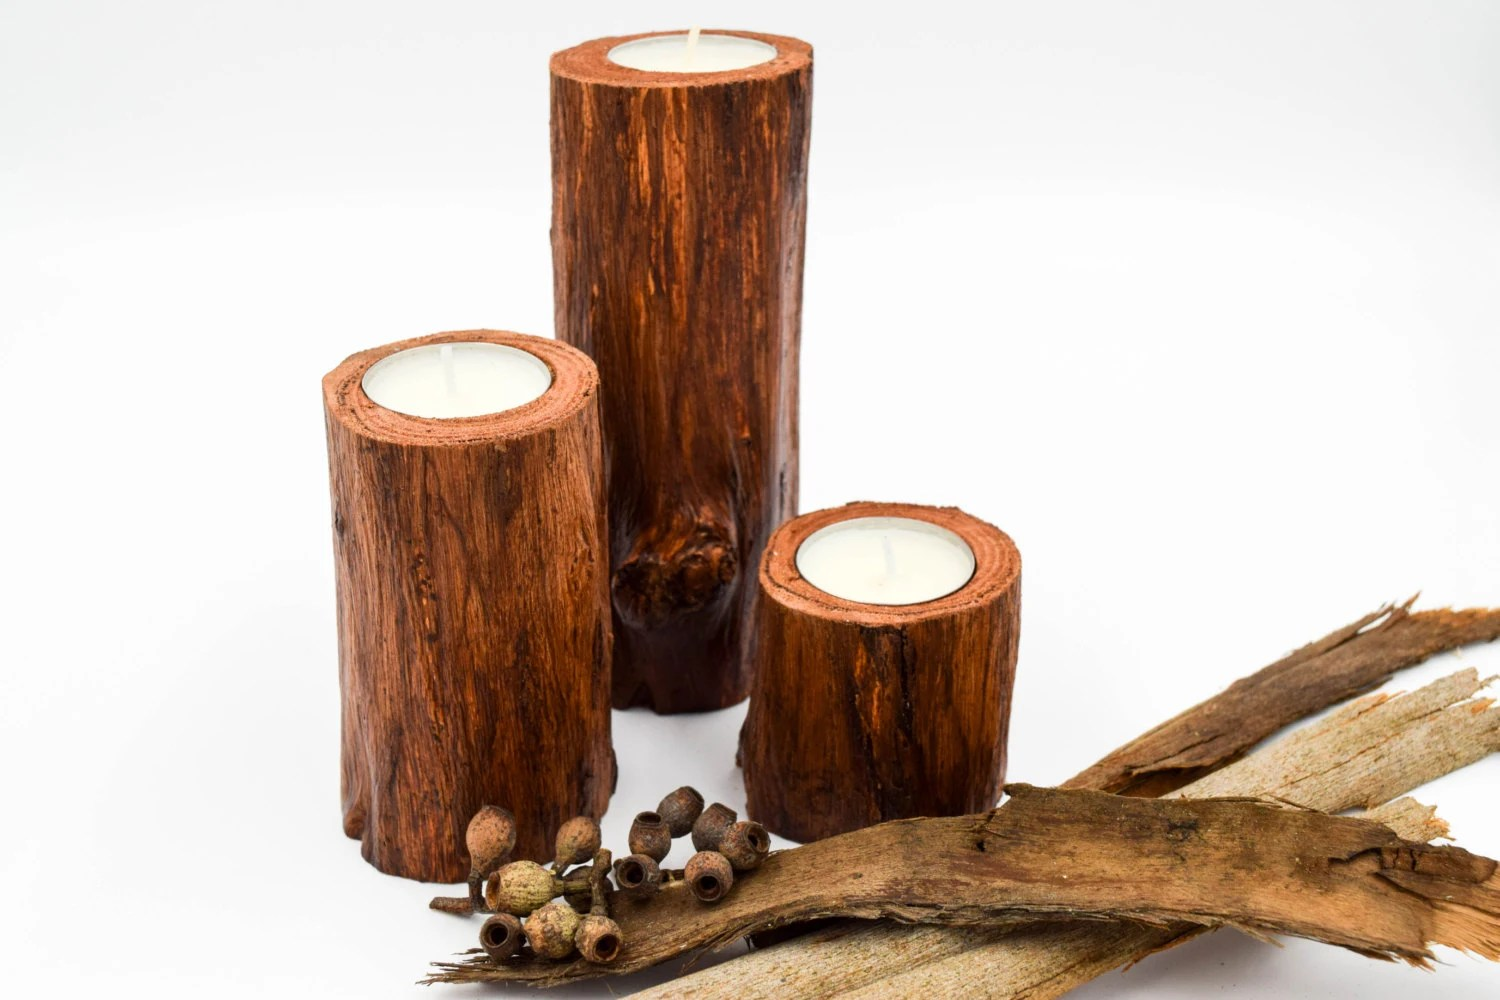 Wooden Candle Holders Australia Wood Candle Holders For Wedding Centerpiece Rustic Wedding